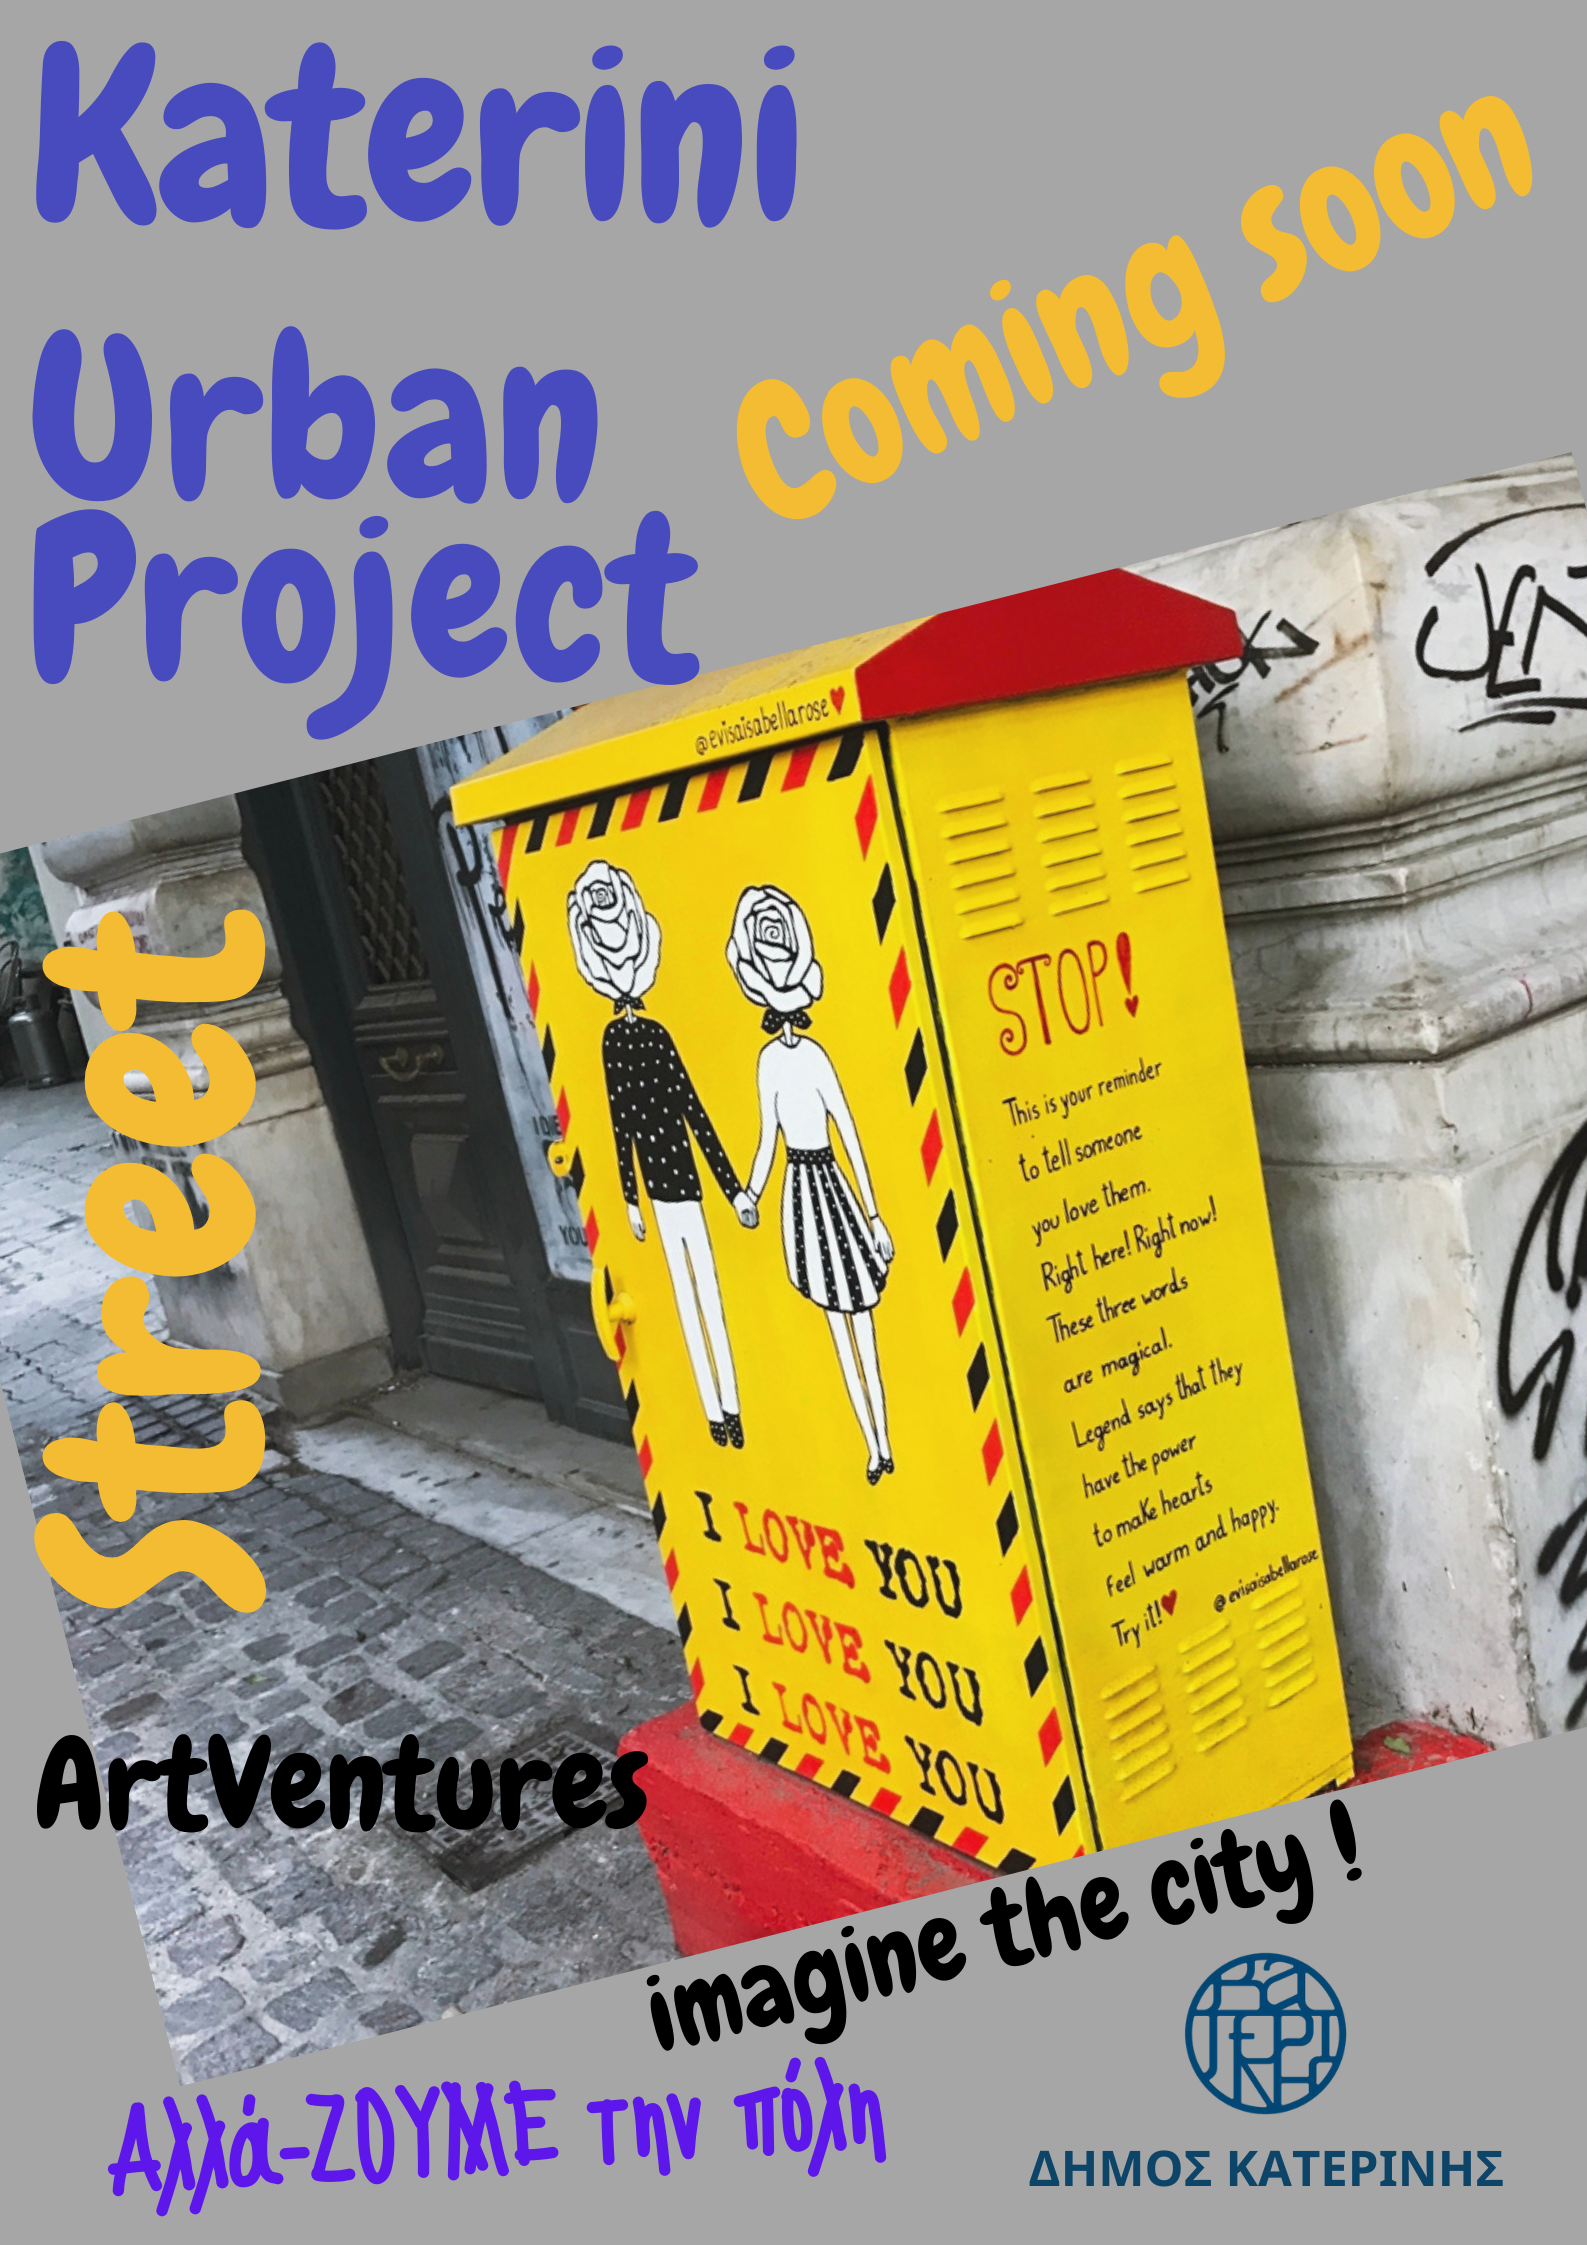 katerini-urban-gallery-project-3.png